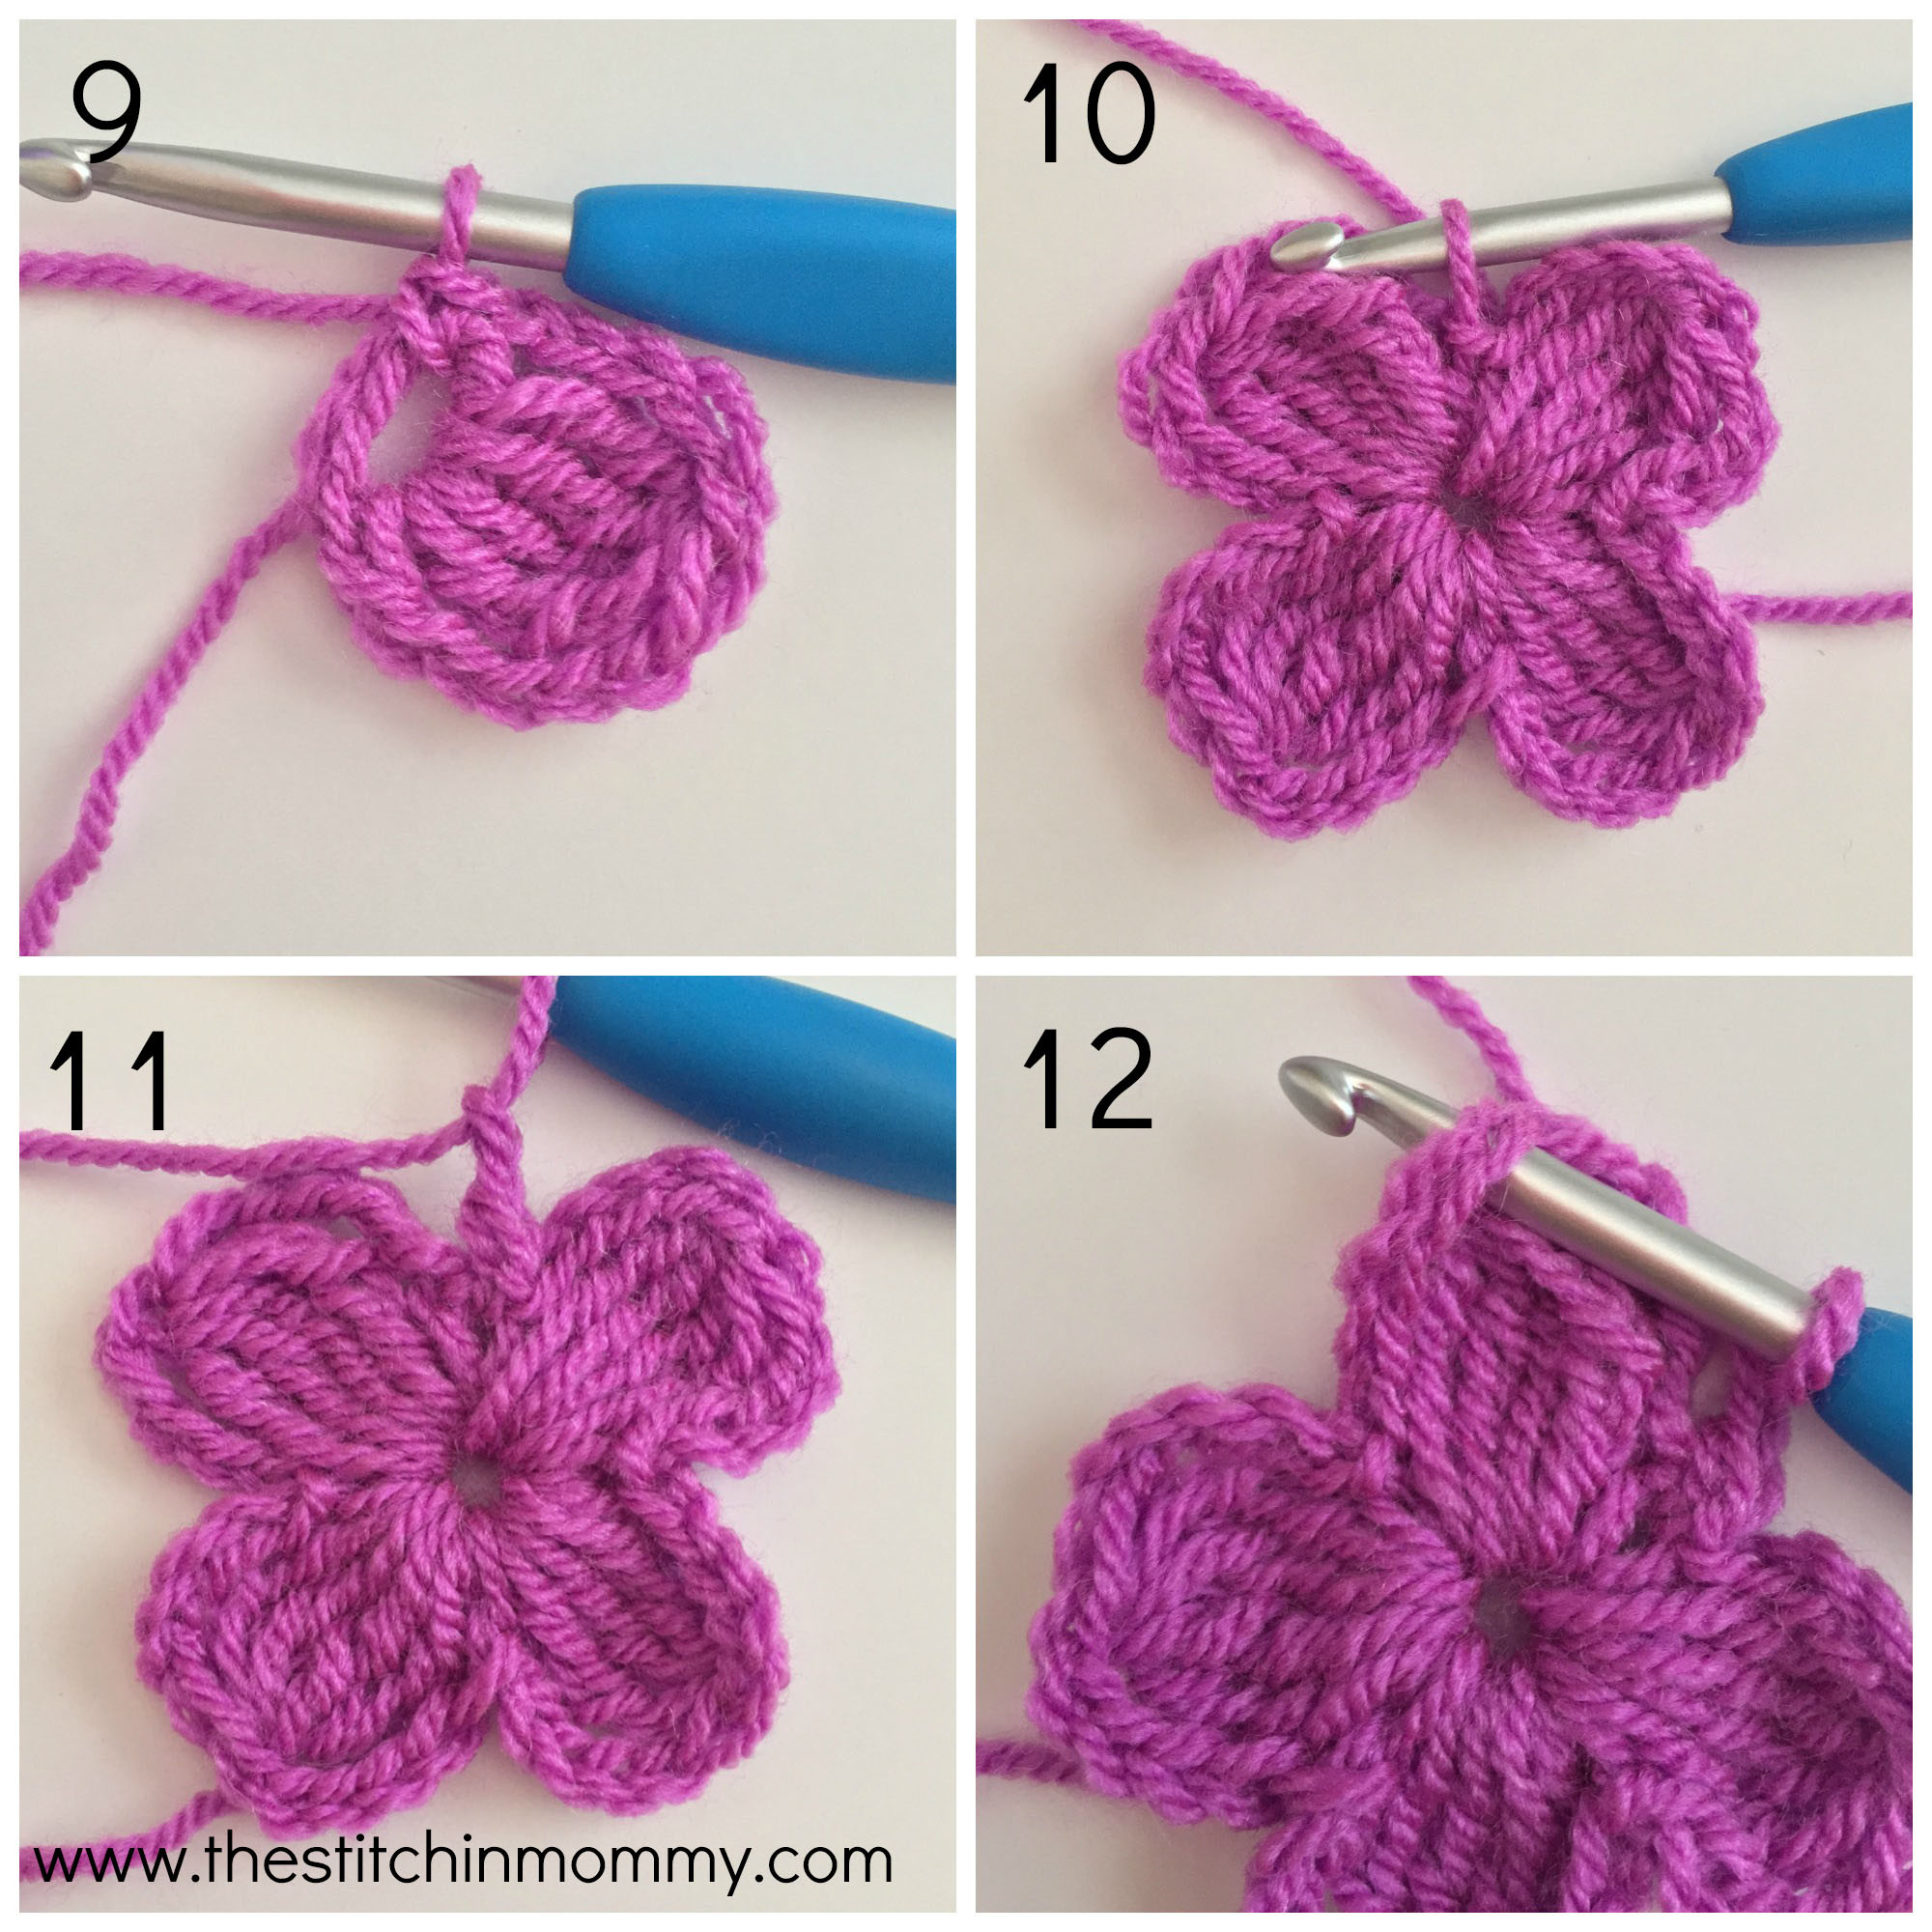 Crochet Knitting Awesome Crochet Basics Step by Step Of Perfect 43 Photos Crochet Knitting